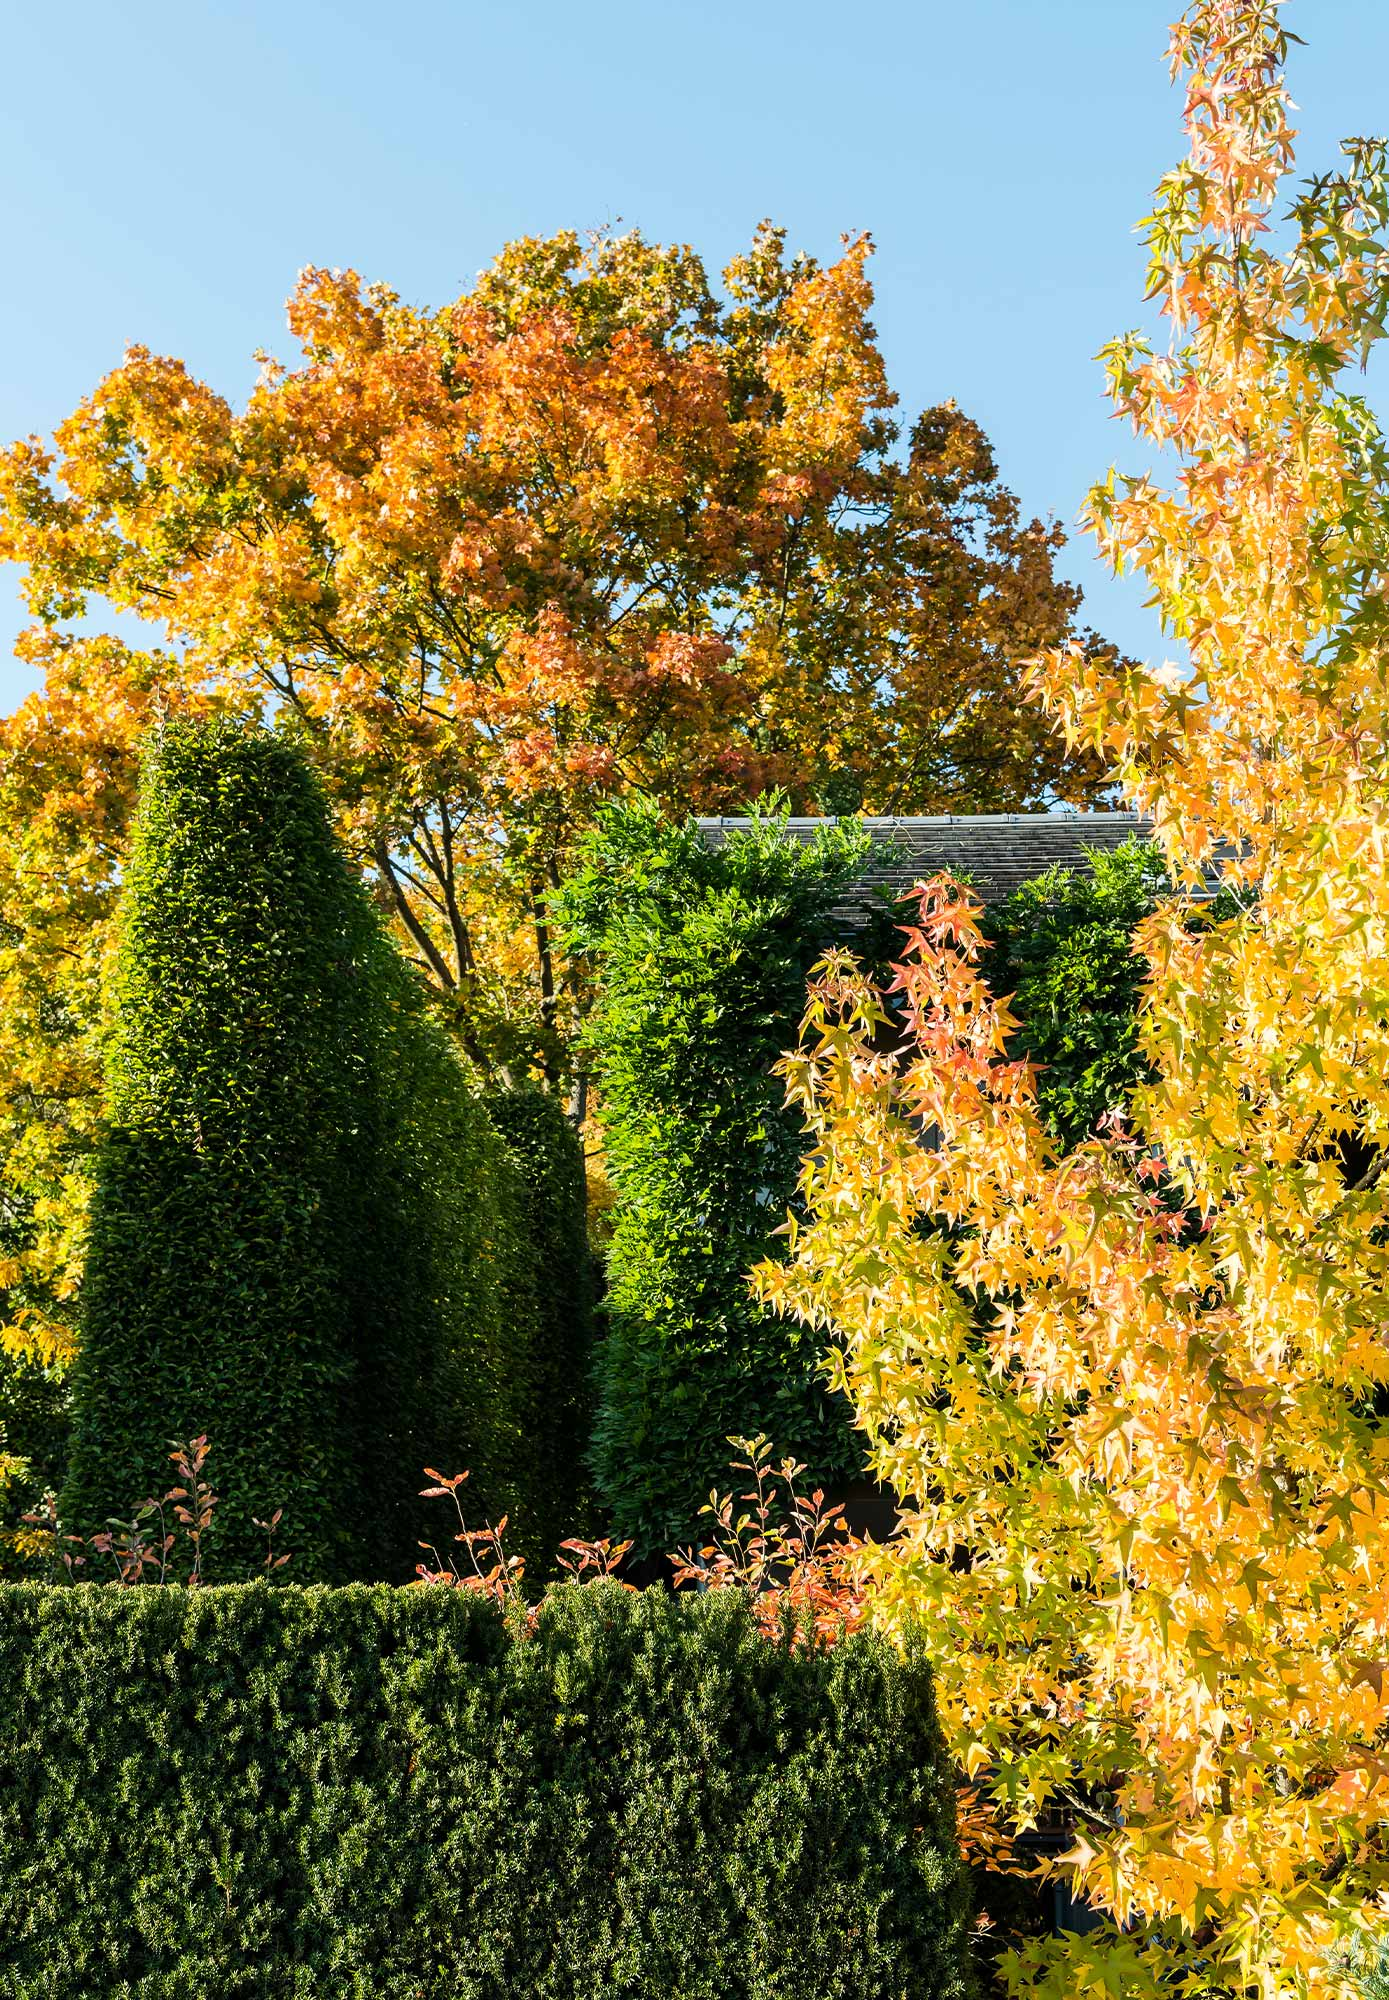 Deciduous trees, hedges and plants under a blue sky